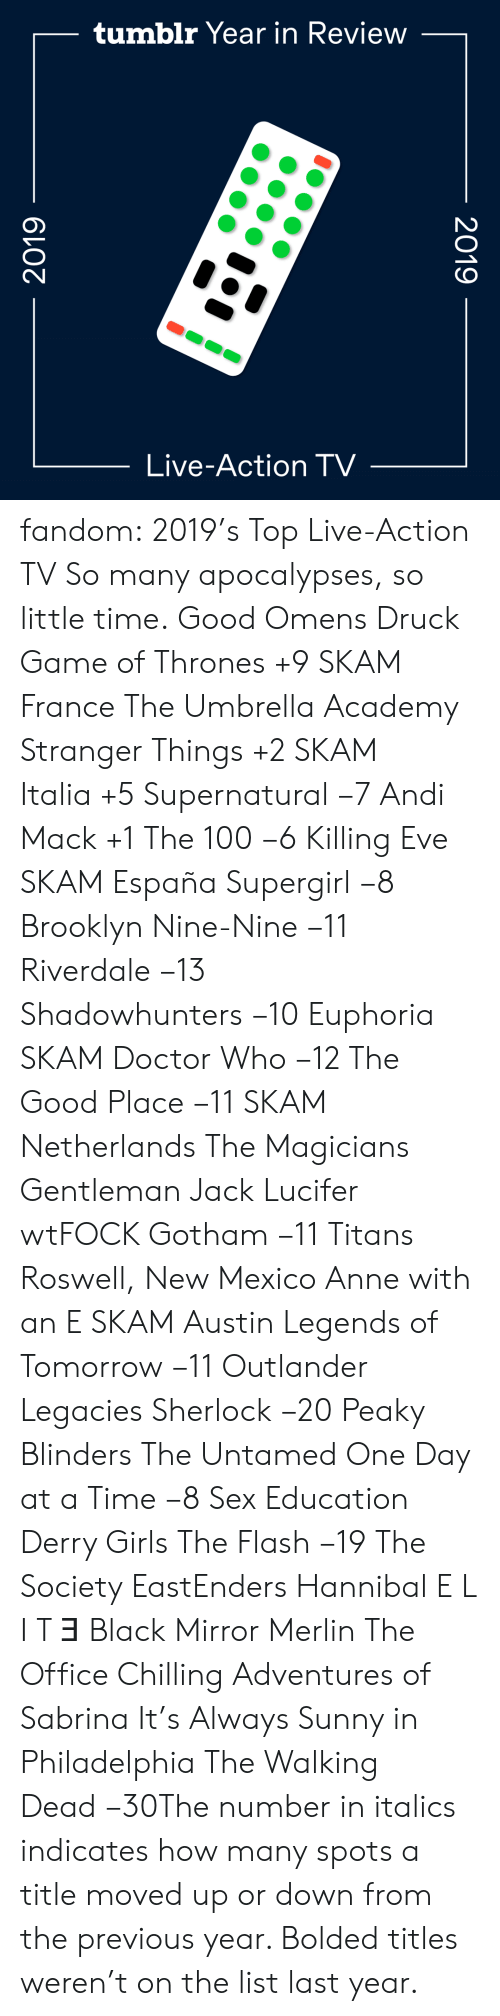 Moved: tumblr Year in Review  Live-Action TV-  2019  2019 fandom:  2019's Top Live-Action TV  So many apocalypses, so little time.  Good Omens  Druck  Game of Thrones +9  SKAM France  The Umbrella Academy  Stranger Things +2  SKAM Italia +5  Supernatural −7  Andi Mack +1  The 100 −6  Killing Eve   SKAM España  Supergirl −8  Brooklyn Nine-Nine −11  Riverdale −13  Shadowhunters −10  Euphoria  SKAM  Doctor Who −12  The Good Place −11  SKAM Netherlands  The Magicians  Gentleman Jack  Lucifer  wtFOCK  Gotham −11  Titans  Roswell, New Mexico  Anne with an E  SKAM Austin  Legends of Tomorrow −11  Outlander  Legacies  Sherlock −20  Peaky Blinders  The Untamed  One Day at a Time −8  Sex Education  Derry Girls  The Flash −19  The Society  EastEnders  Hannibal  E L I T Ǝ  Black Mirror  Merlin  The Office  Chilling Adventures of Sabrina  It's Always Sunny in Philadelphia The Walking Dead −30The number in italics indicates how many spots a title moved up or down from the previous year. Bolded titles weren't on the list last year.